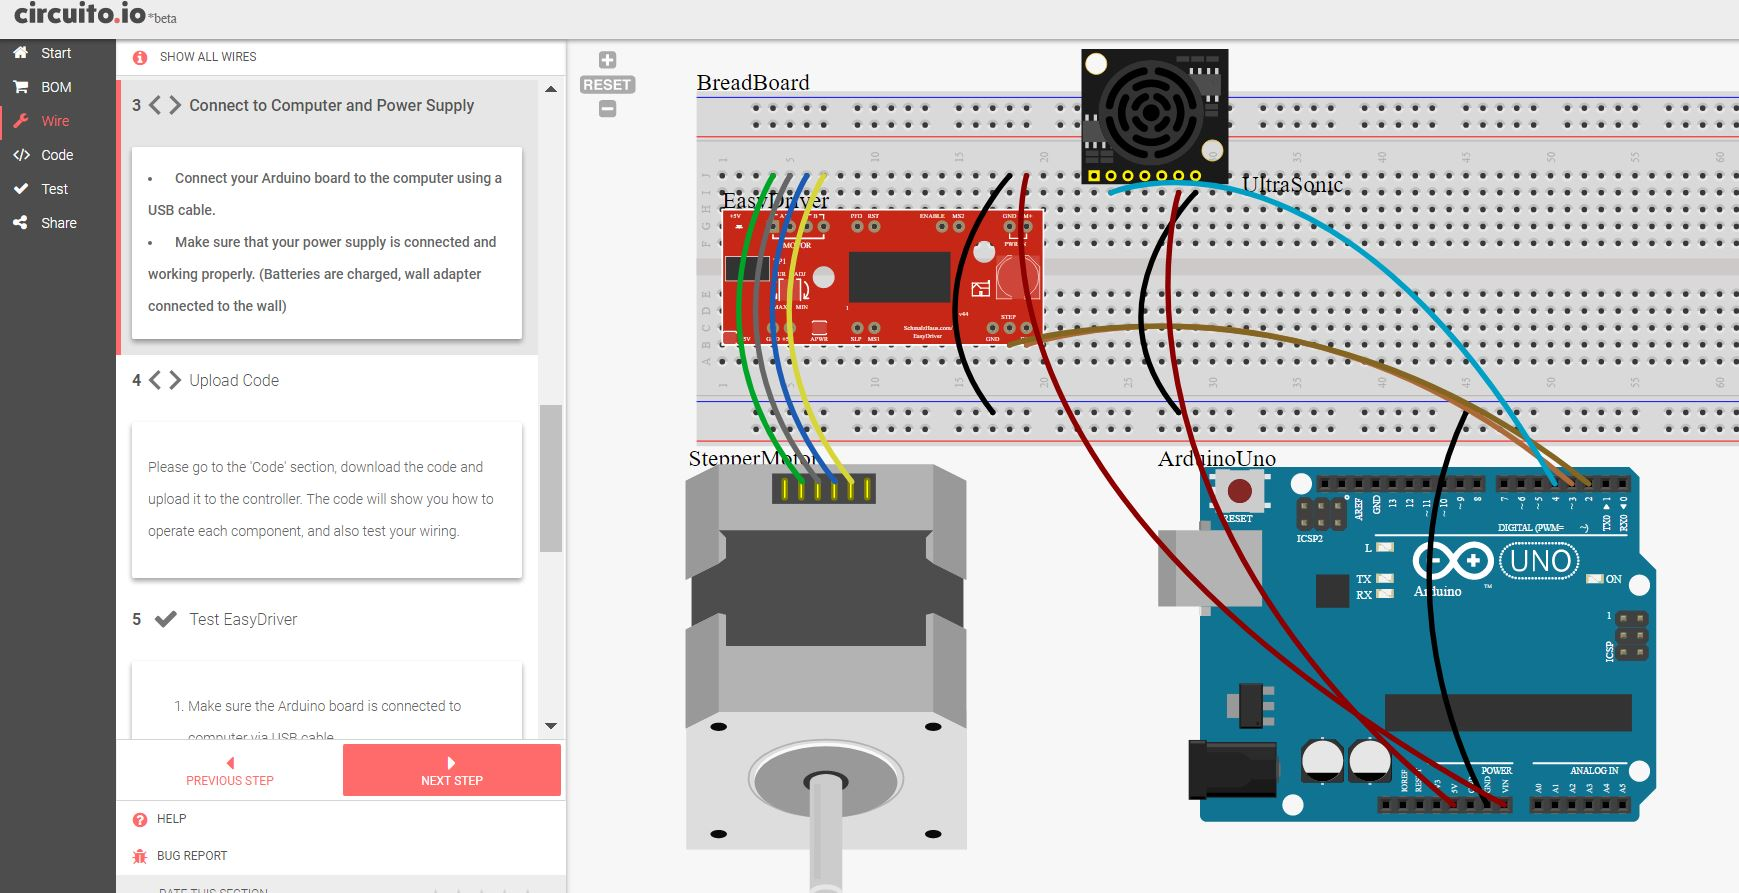 Circuito Io : Circuito helps beginners assemble electronic projects make